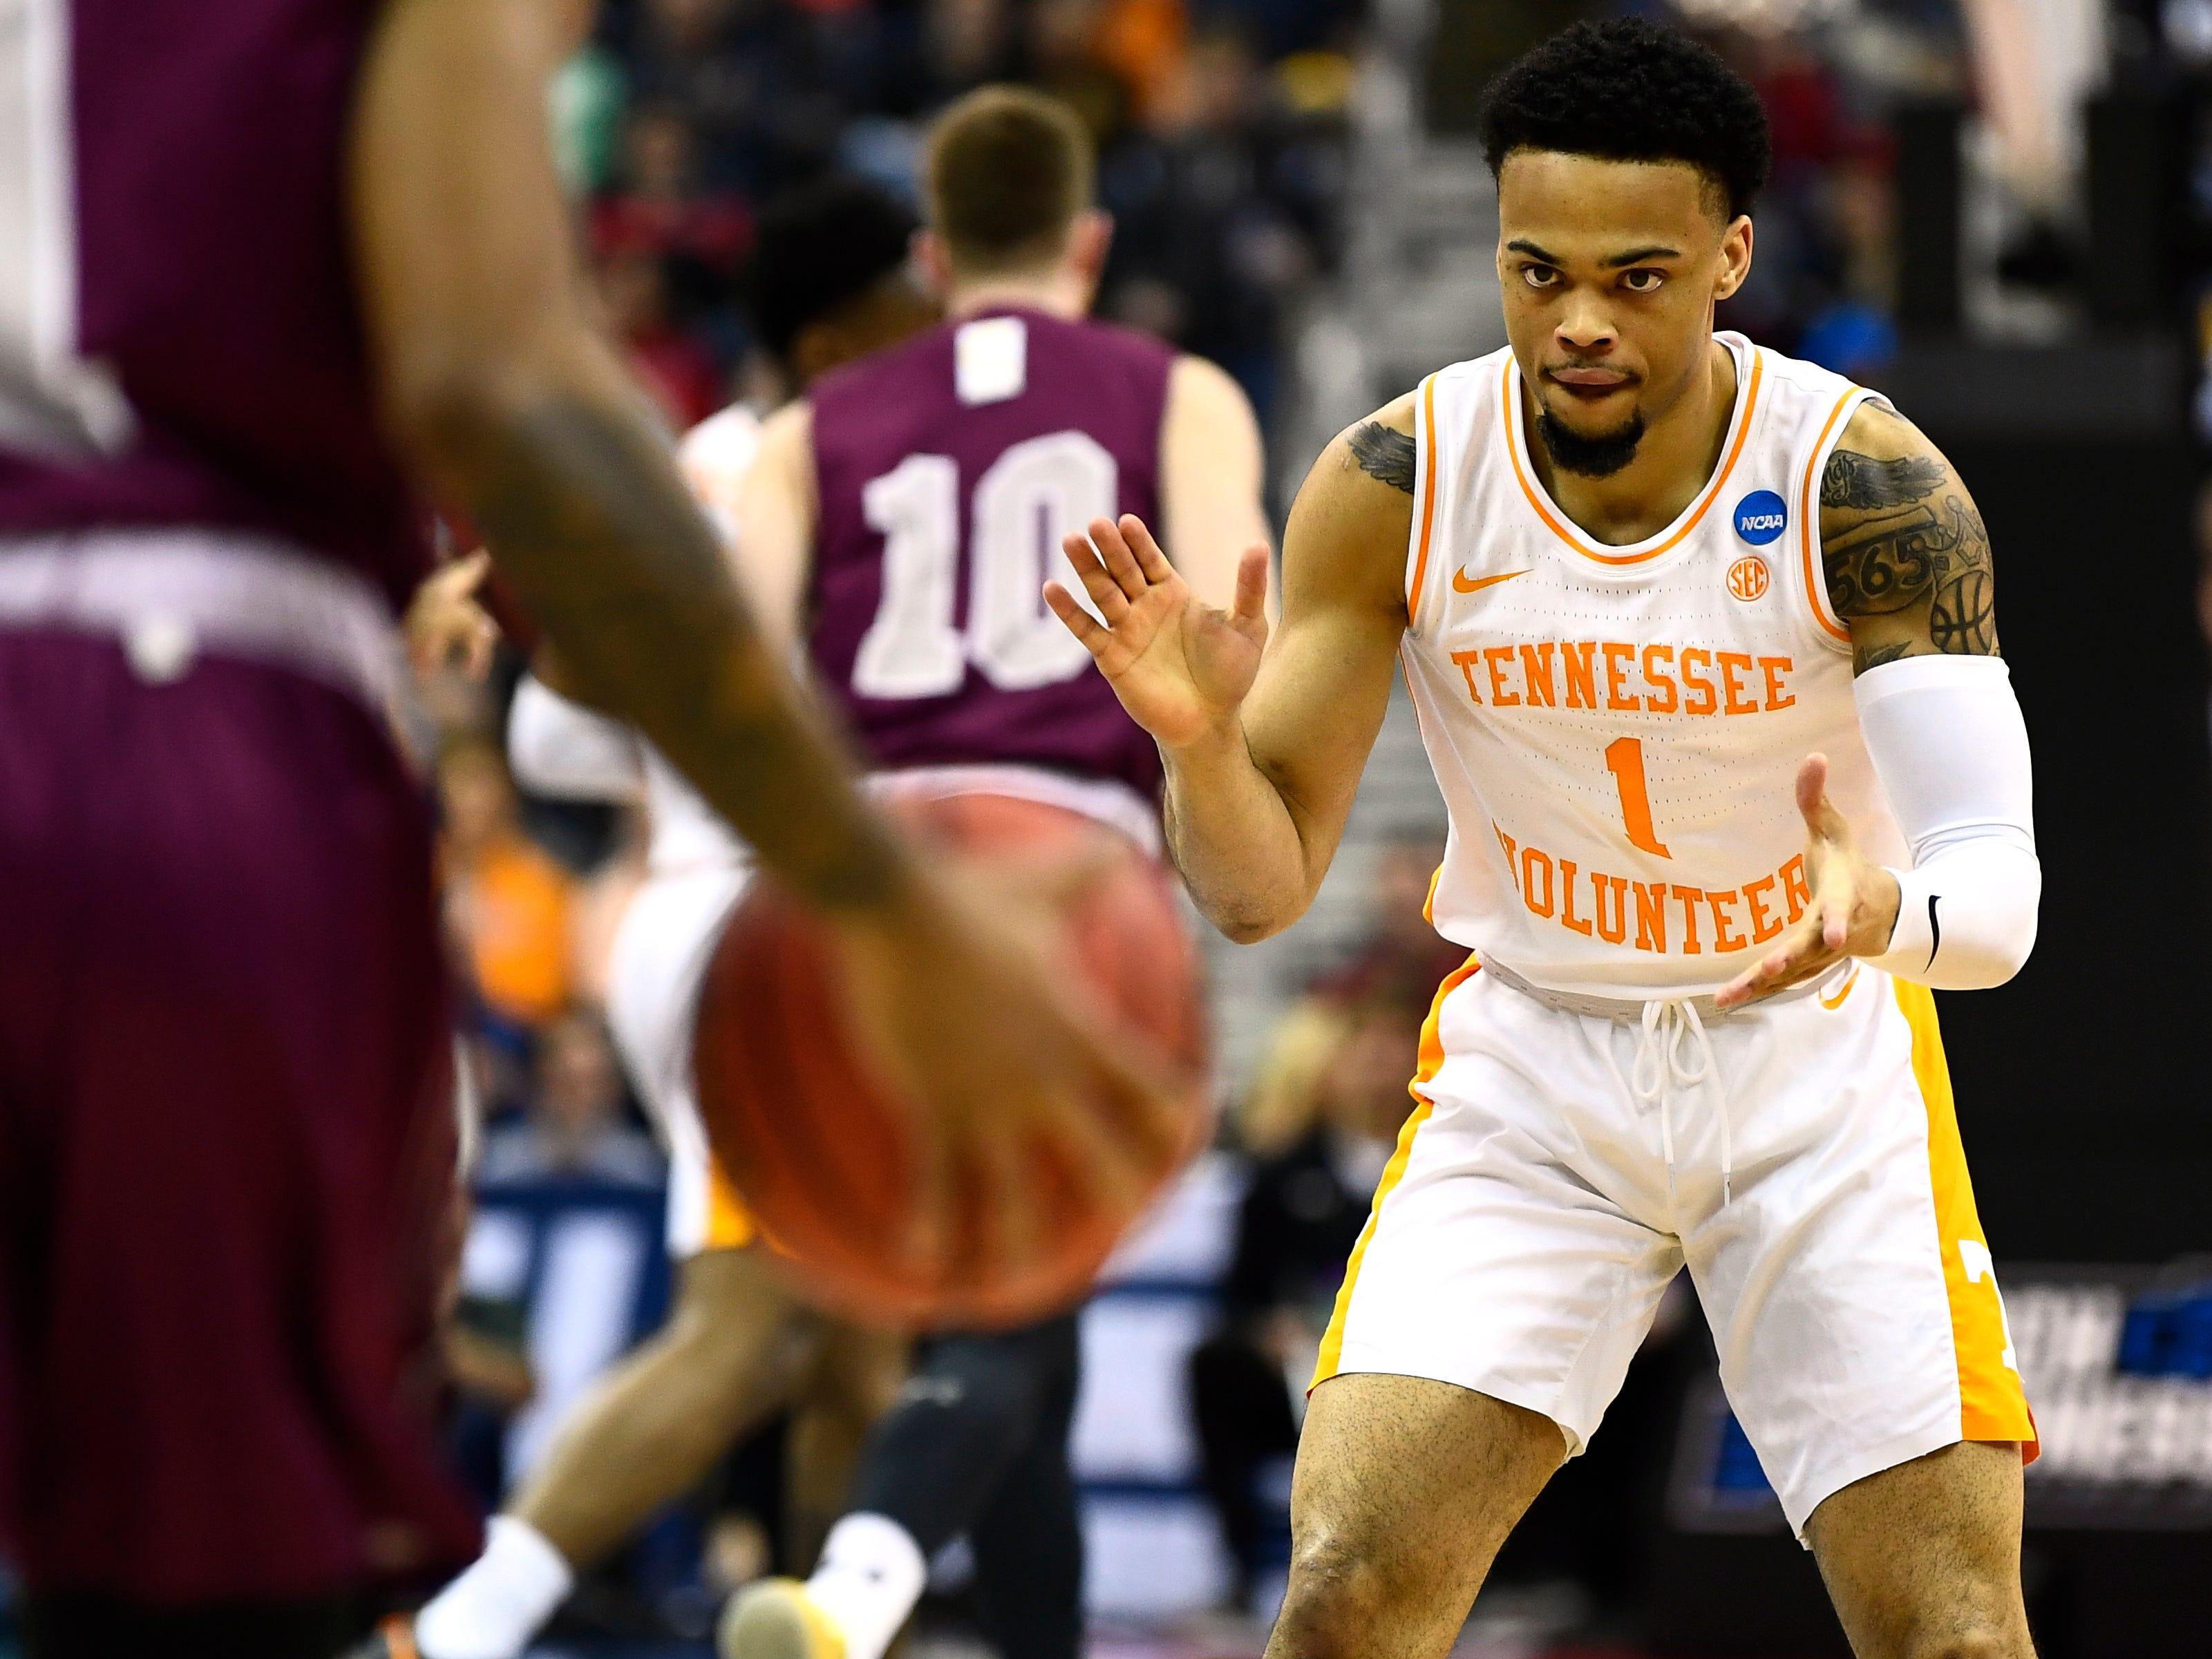 Tennessee guard Lamonte Turner (1) claps his hands as he begins to defend Colgate guard Jordan Burns (1) during the the first round game of the NCAA Tournament at Nationwide Arena in Columbus, Ohio, on Friday, March 22, 2019.